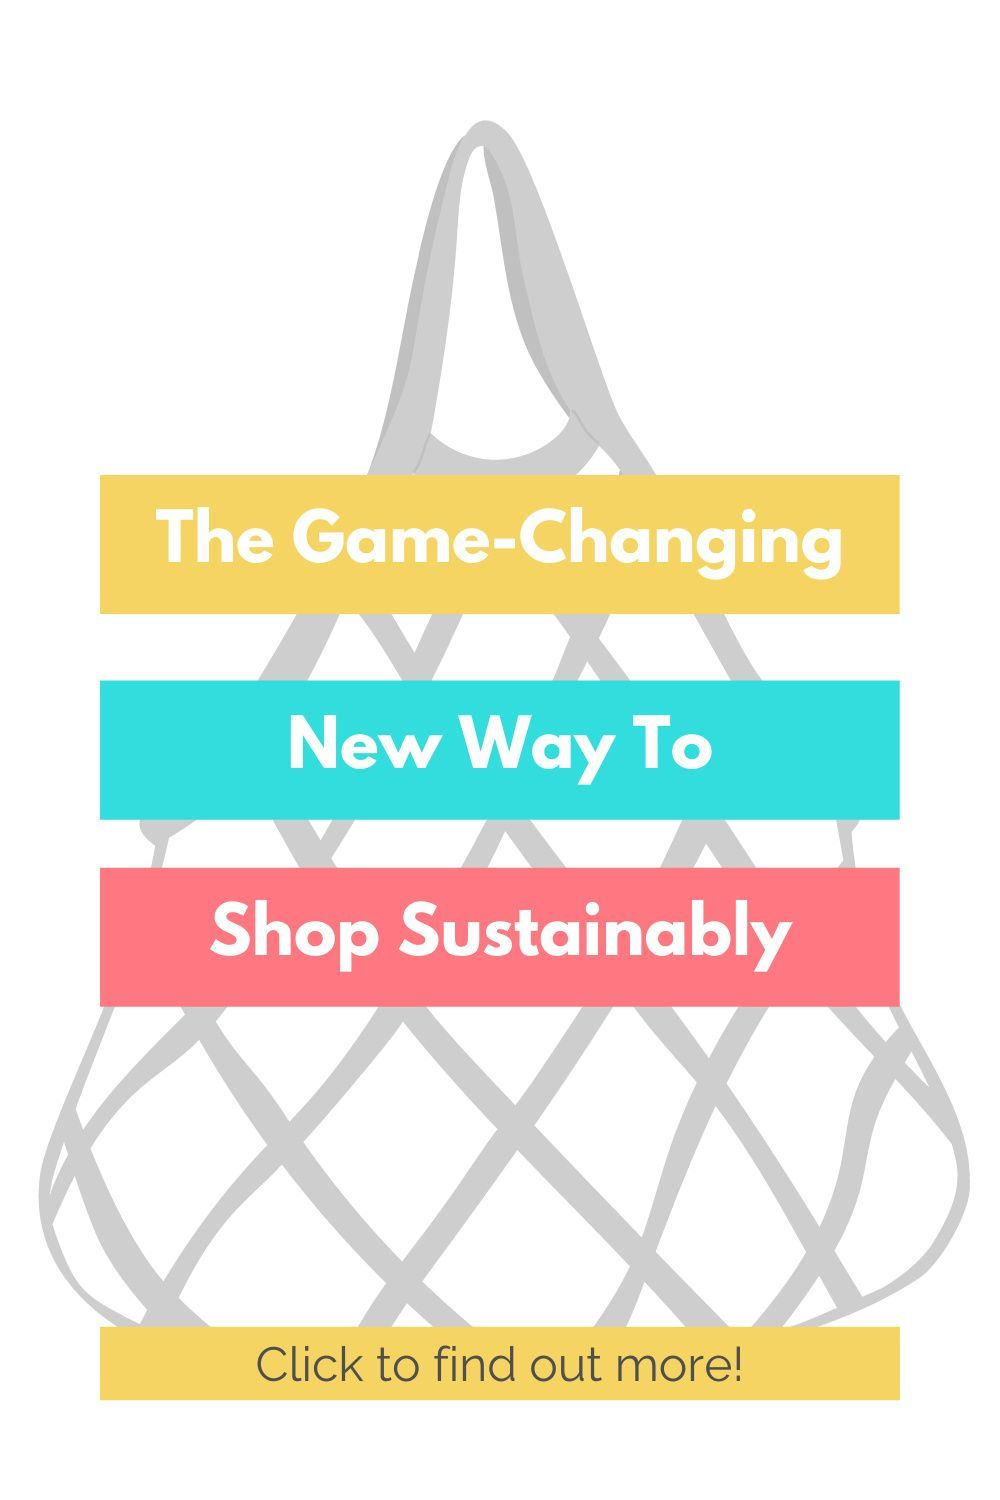 The game-changing new way to shop sustainably #ecohome #ecoliving #ecolifestyle